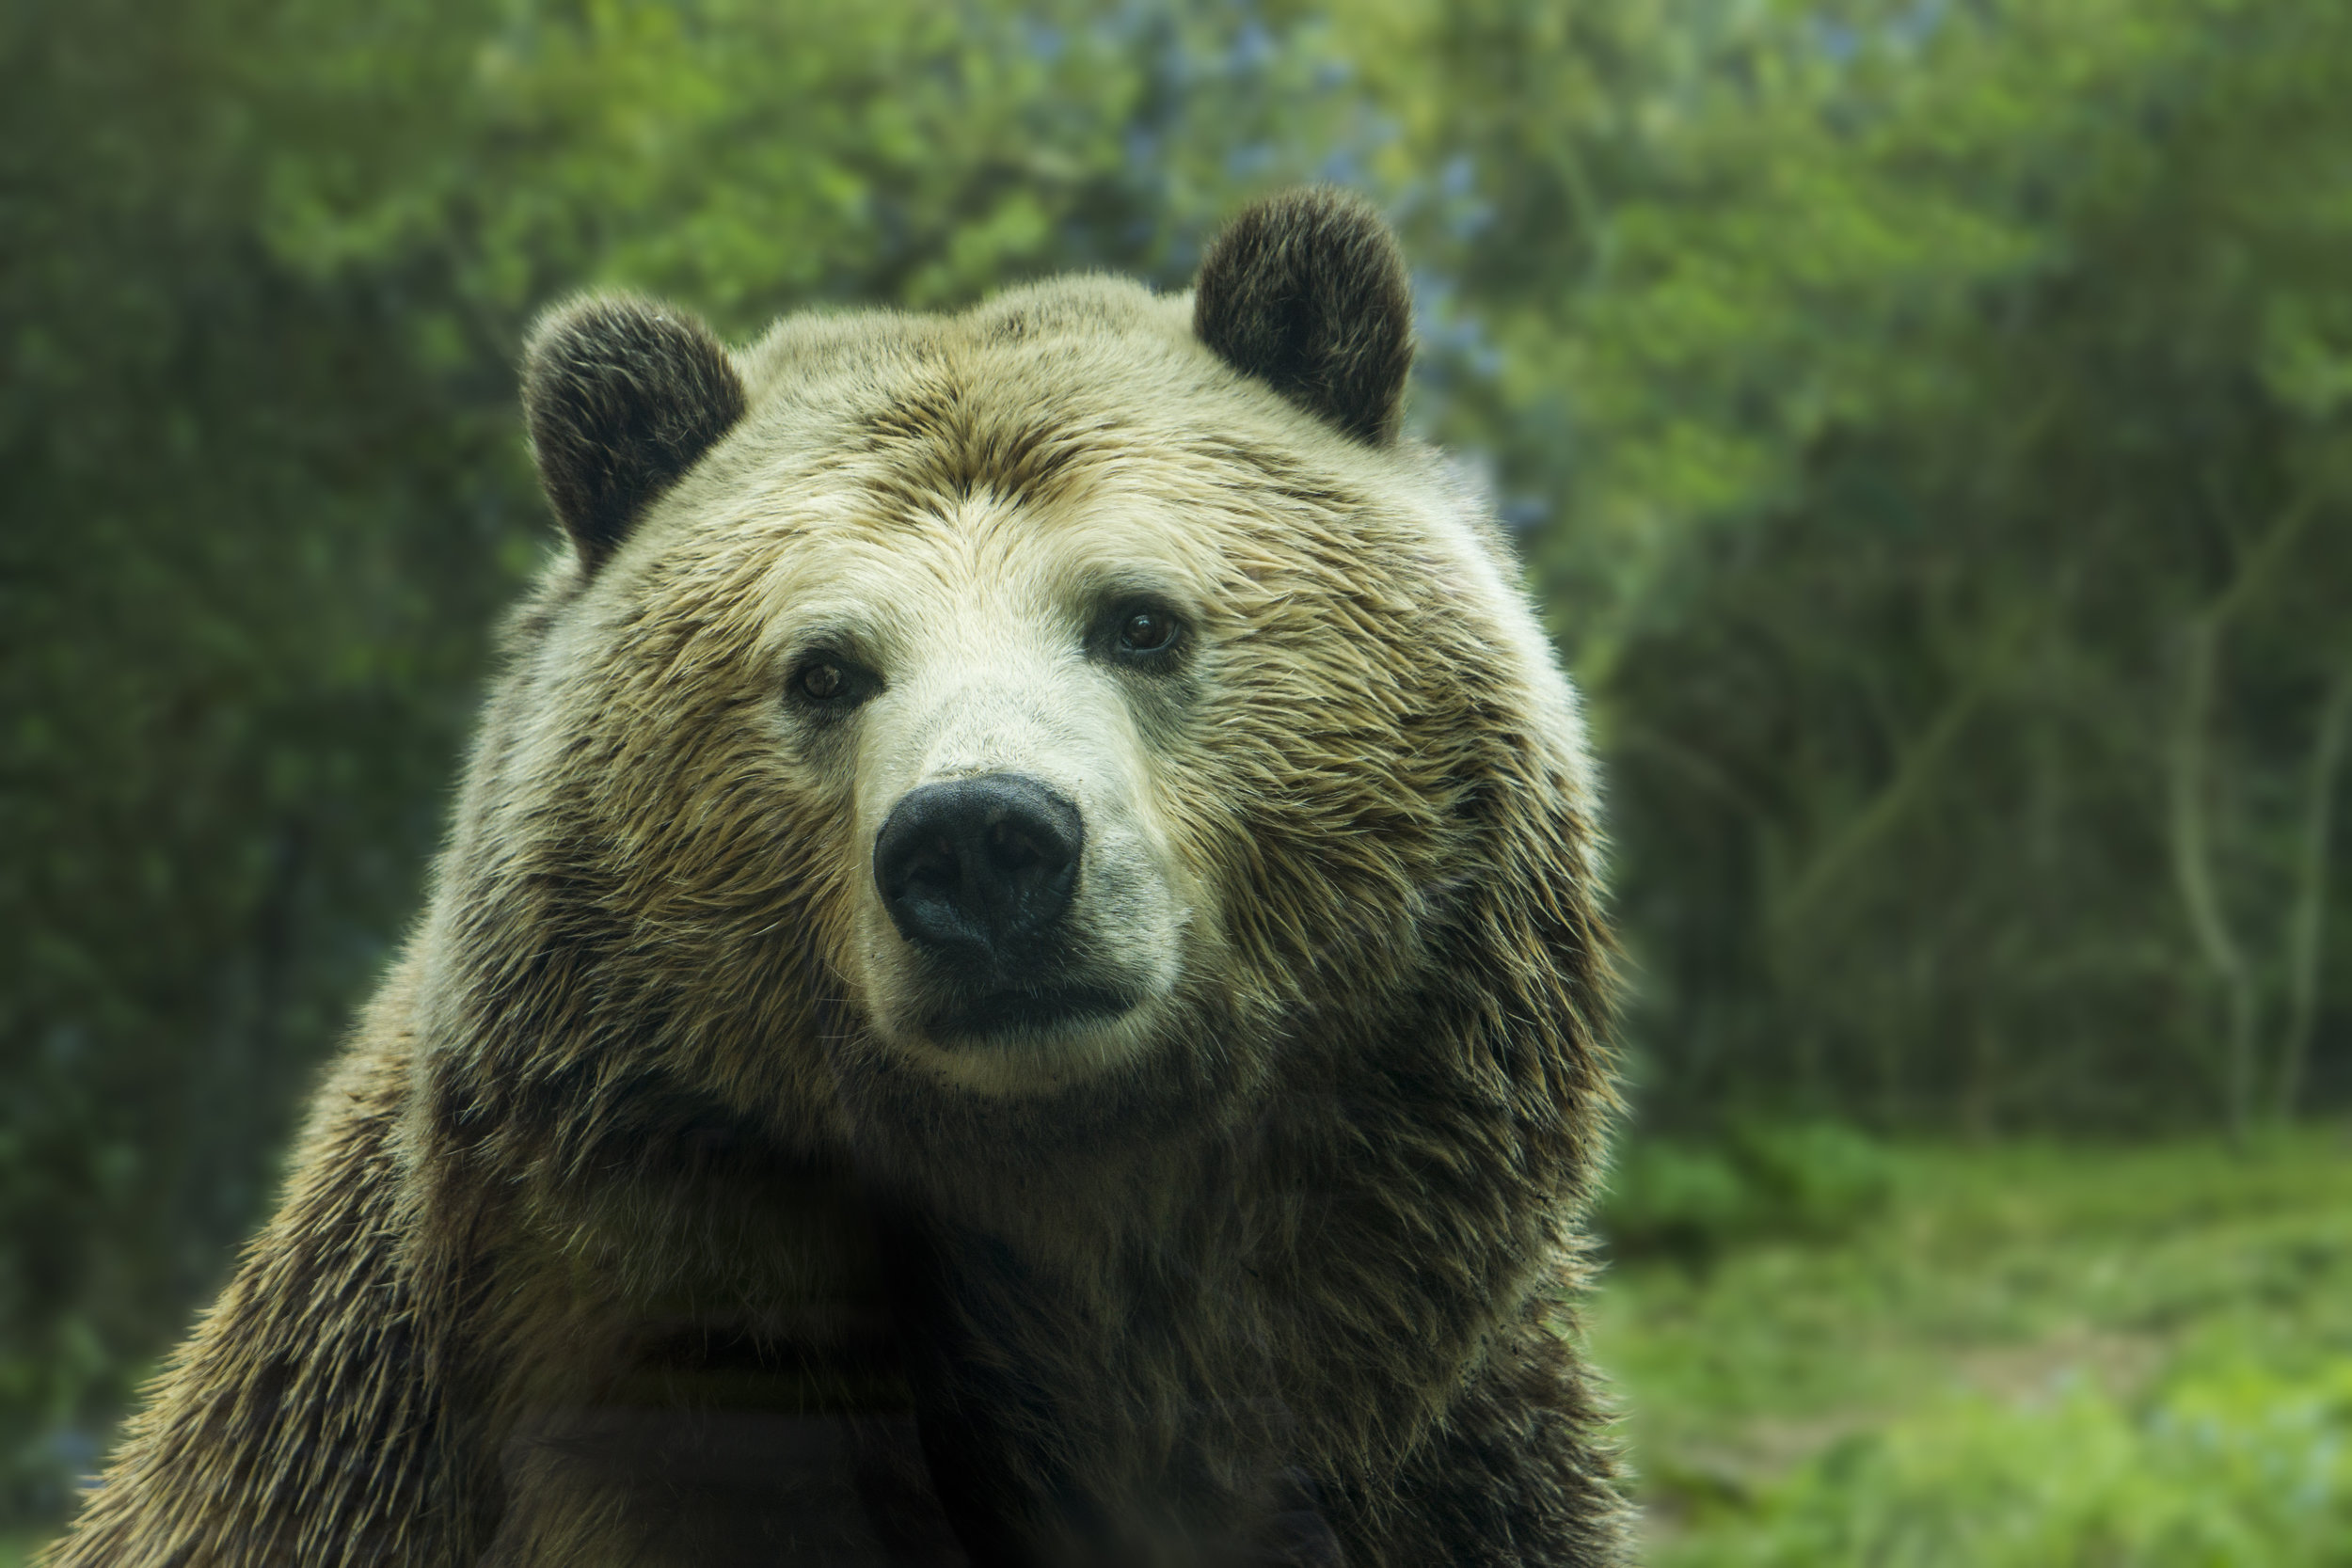 Close-up on a brown bear